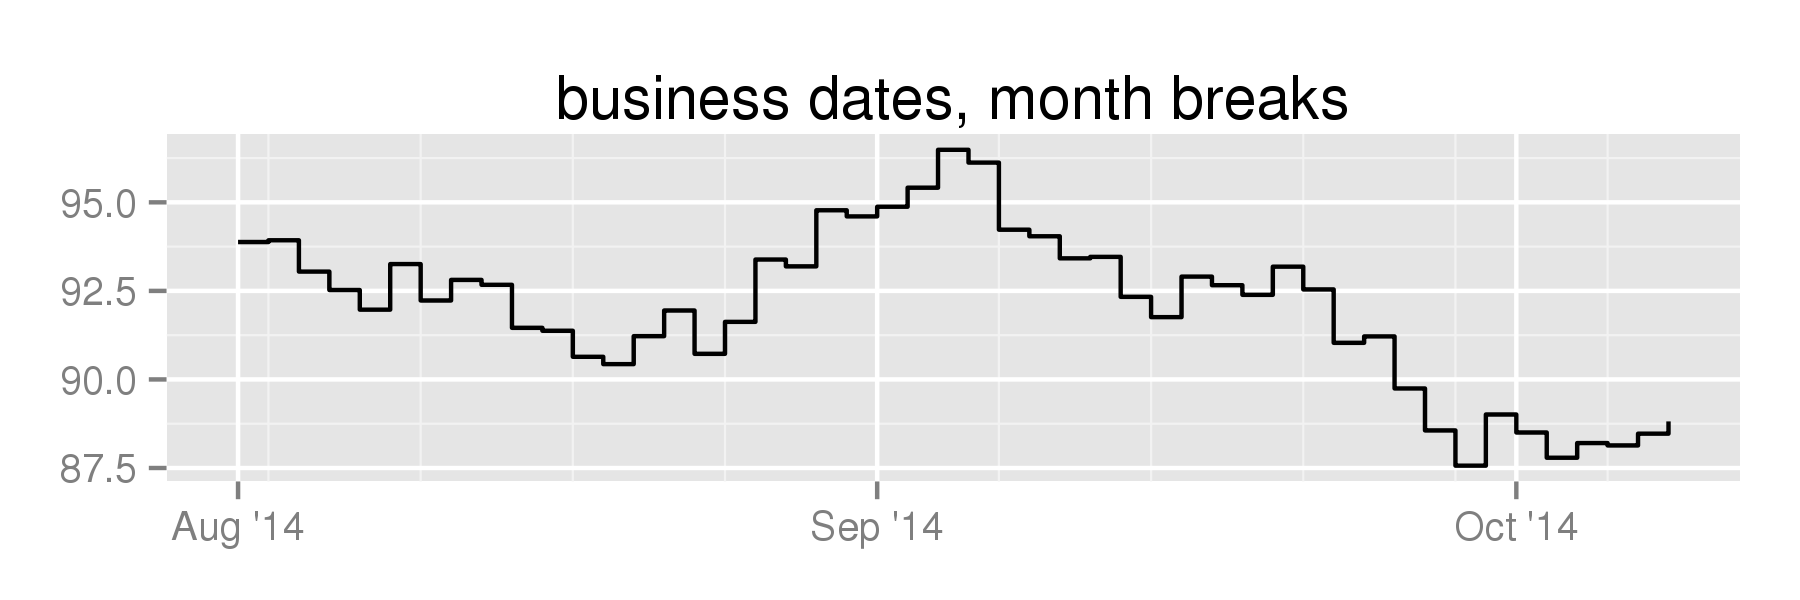 business dates, month breaks